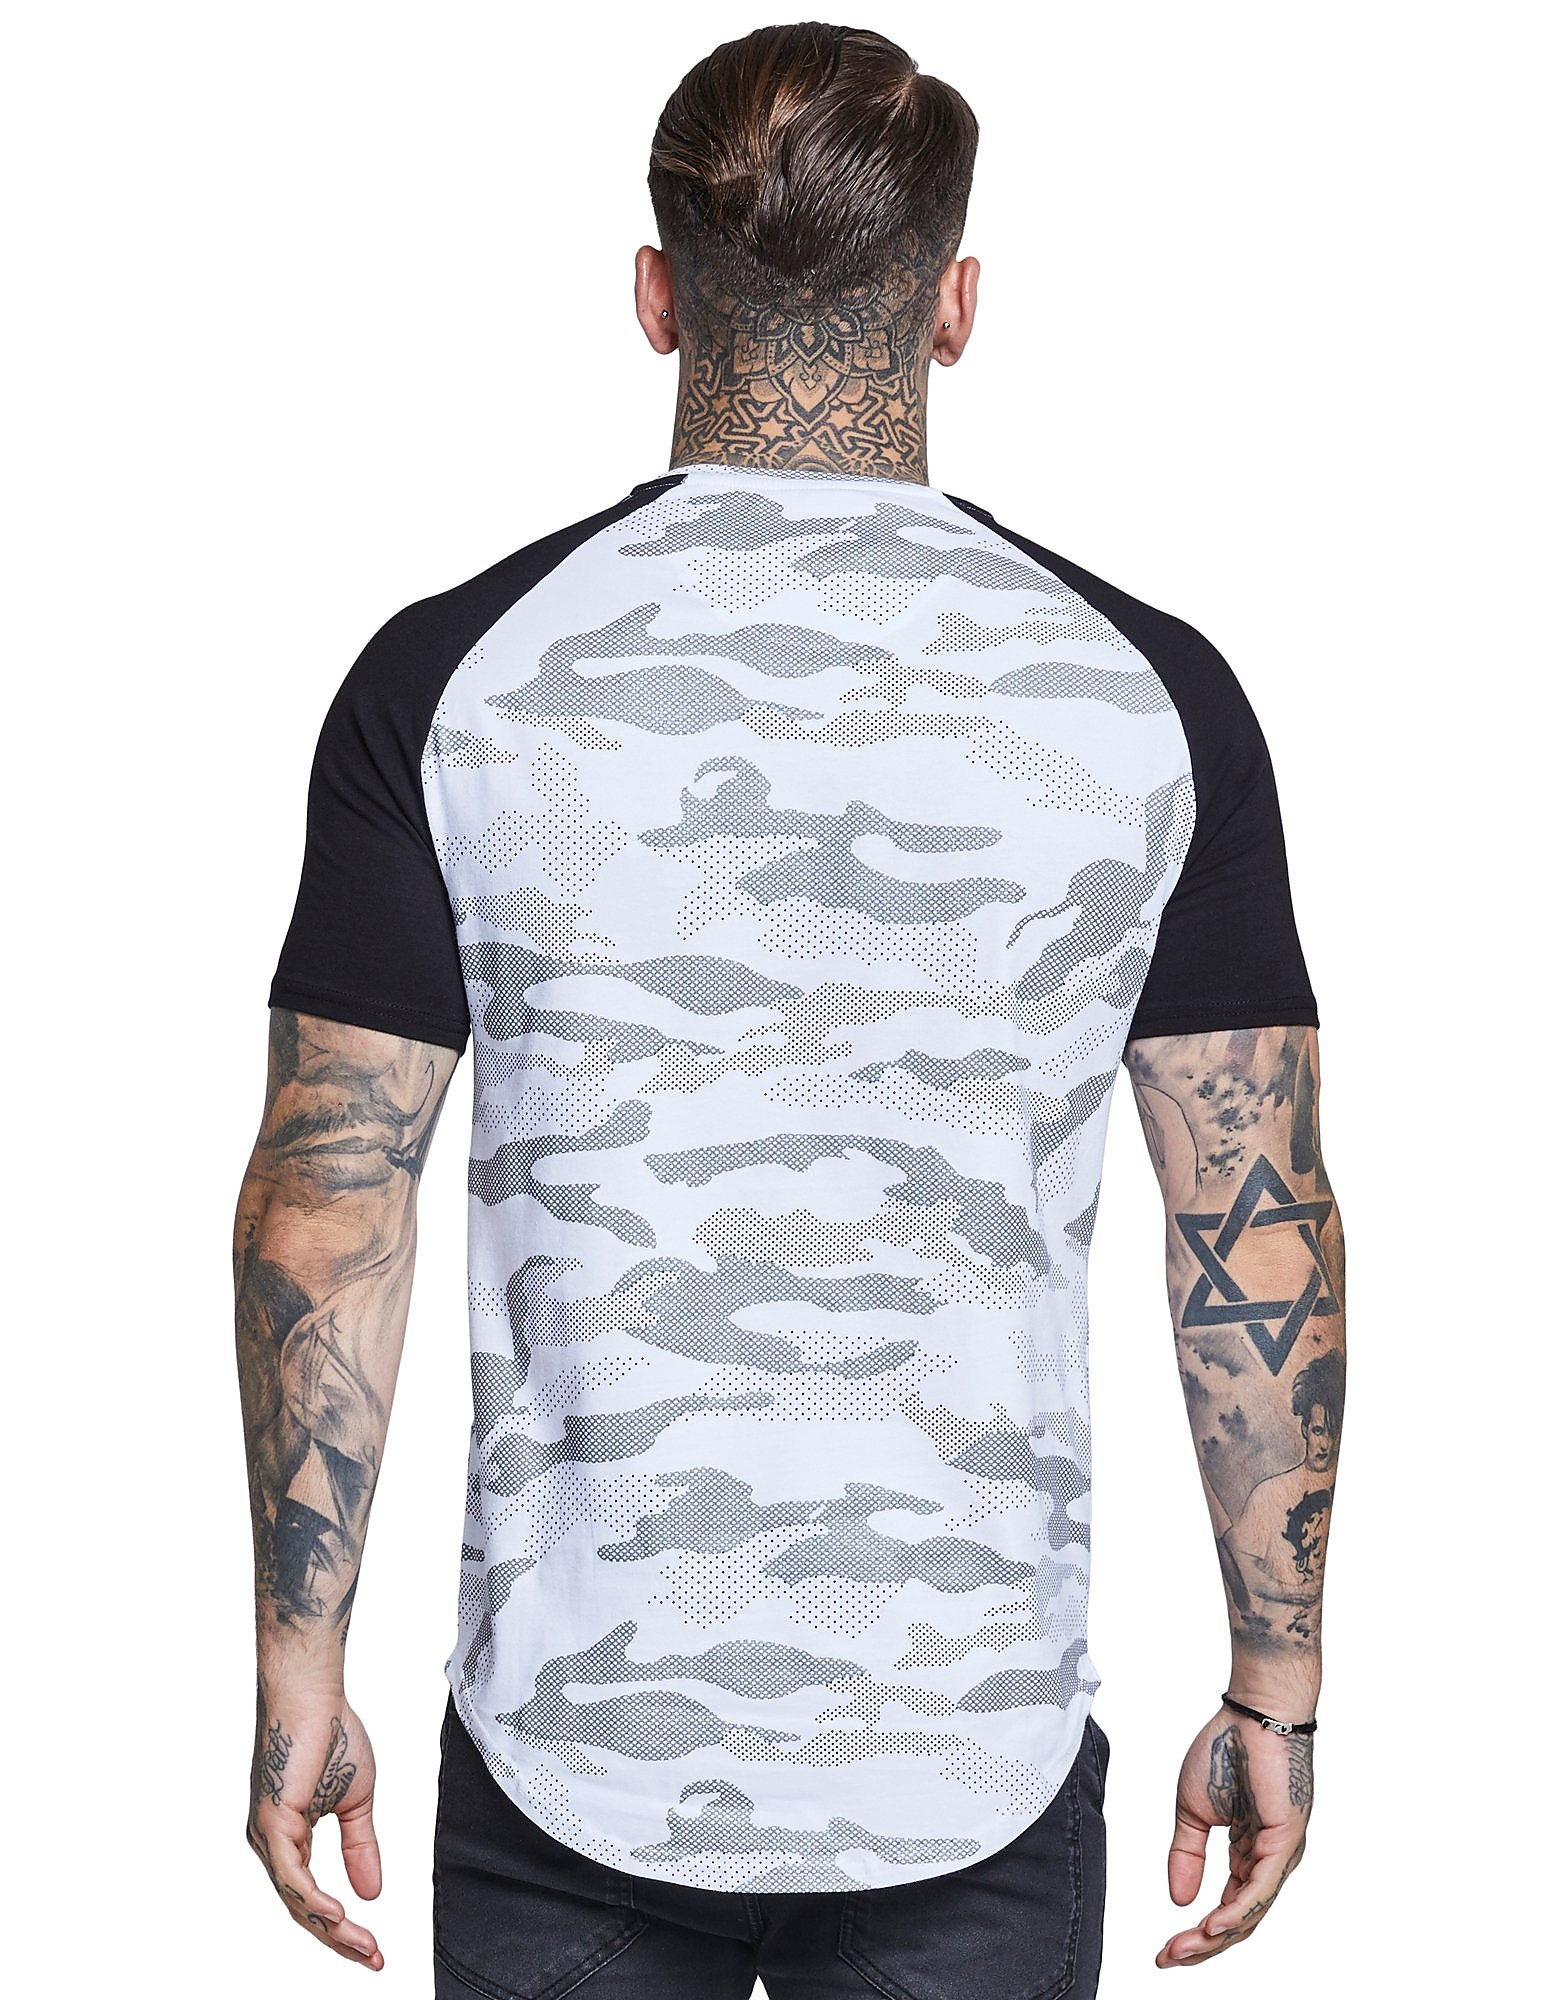 SikSilk Reflective Camo T-Shirt